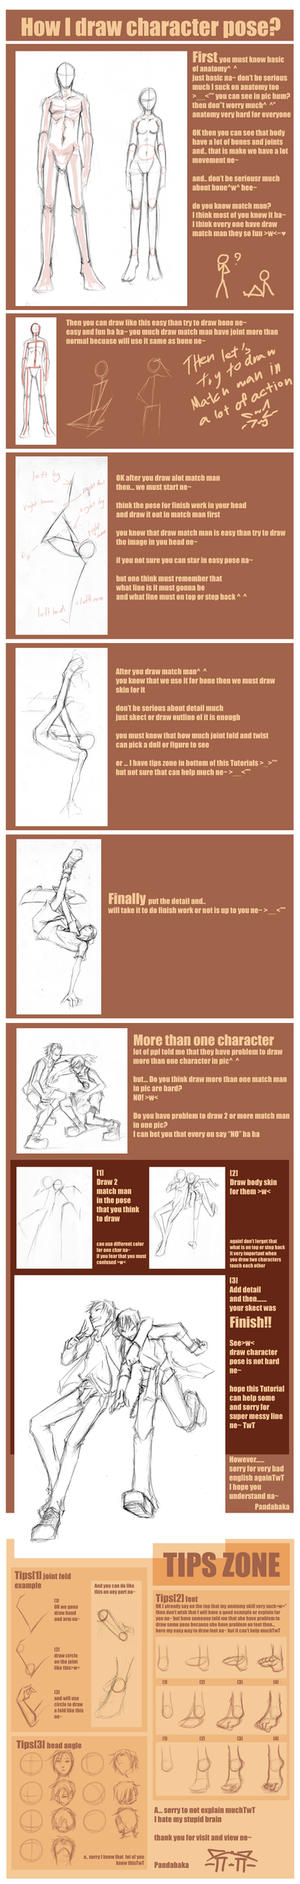 How I draw char. pose